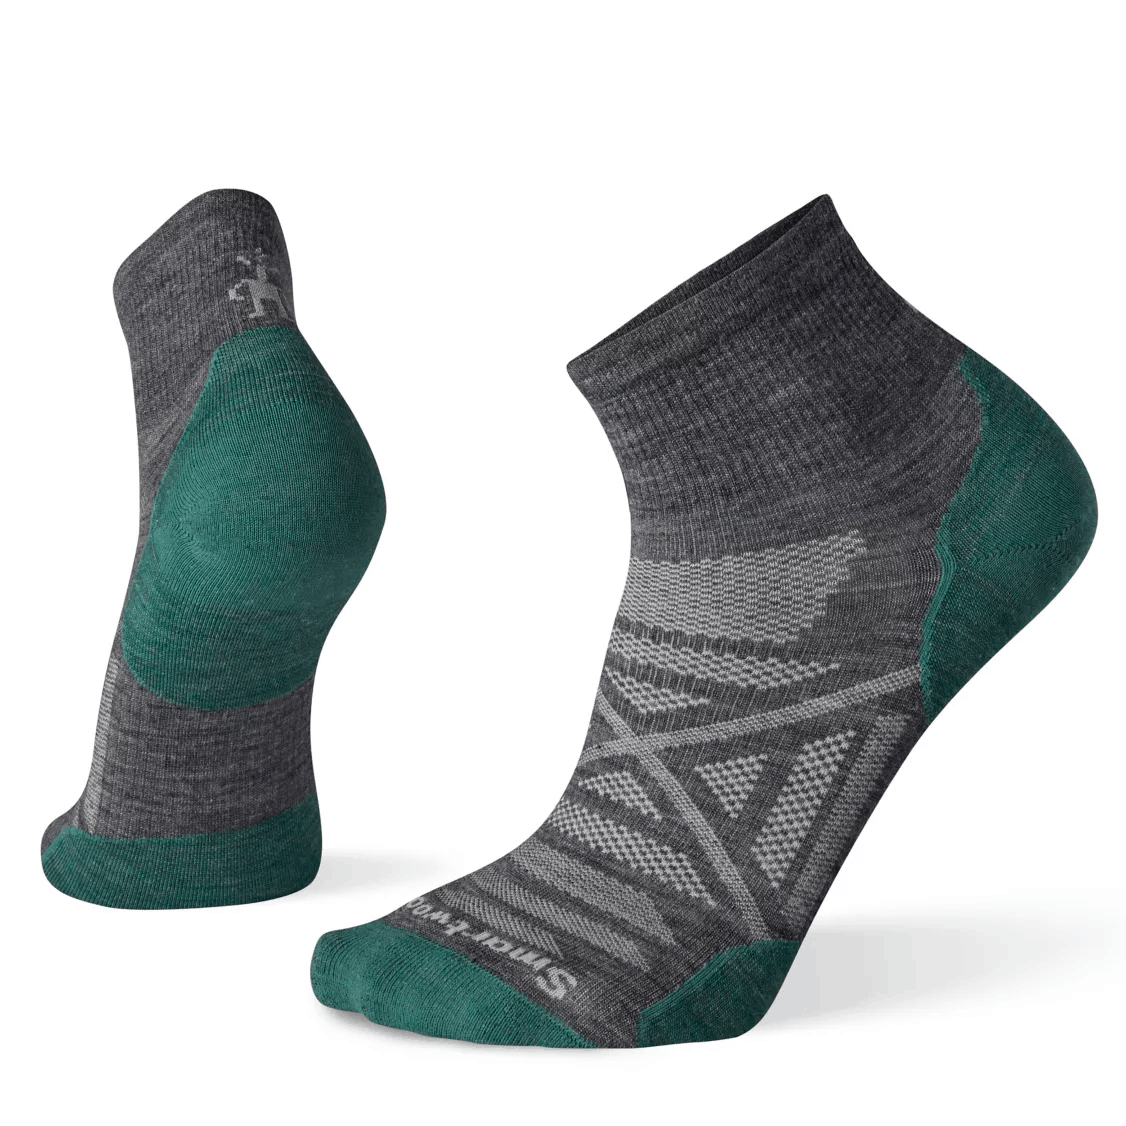 Smartwool outdoor ultralight merino wool socks